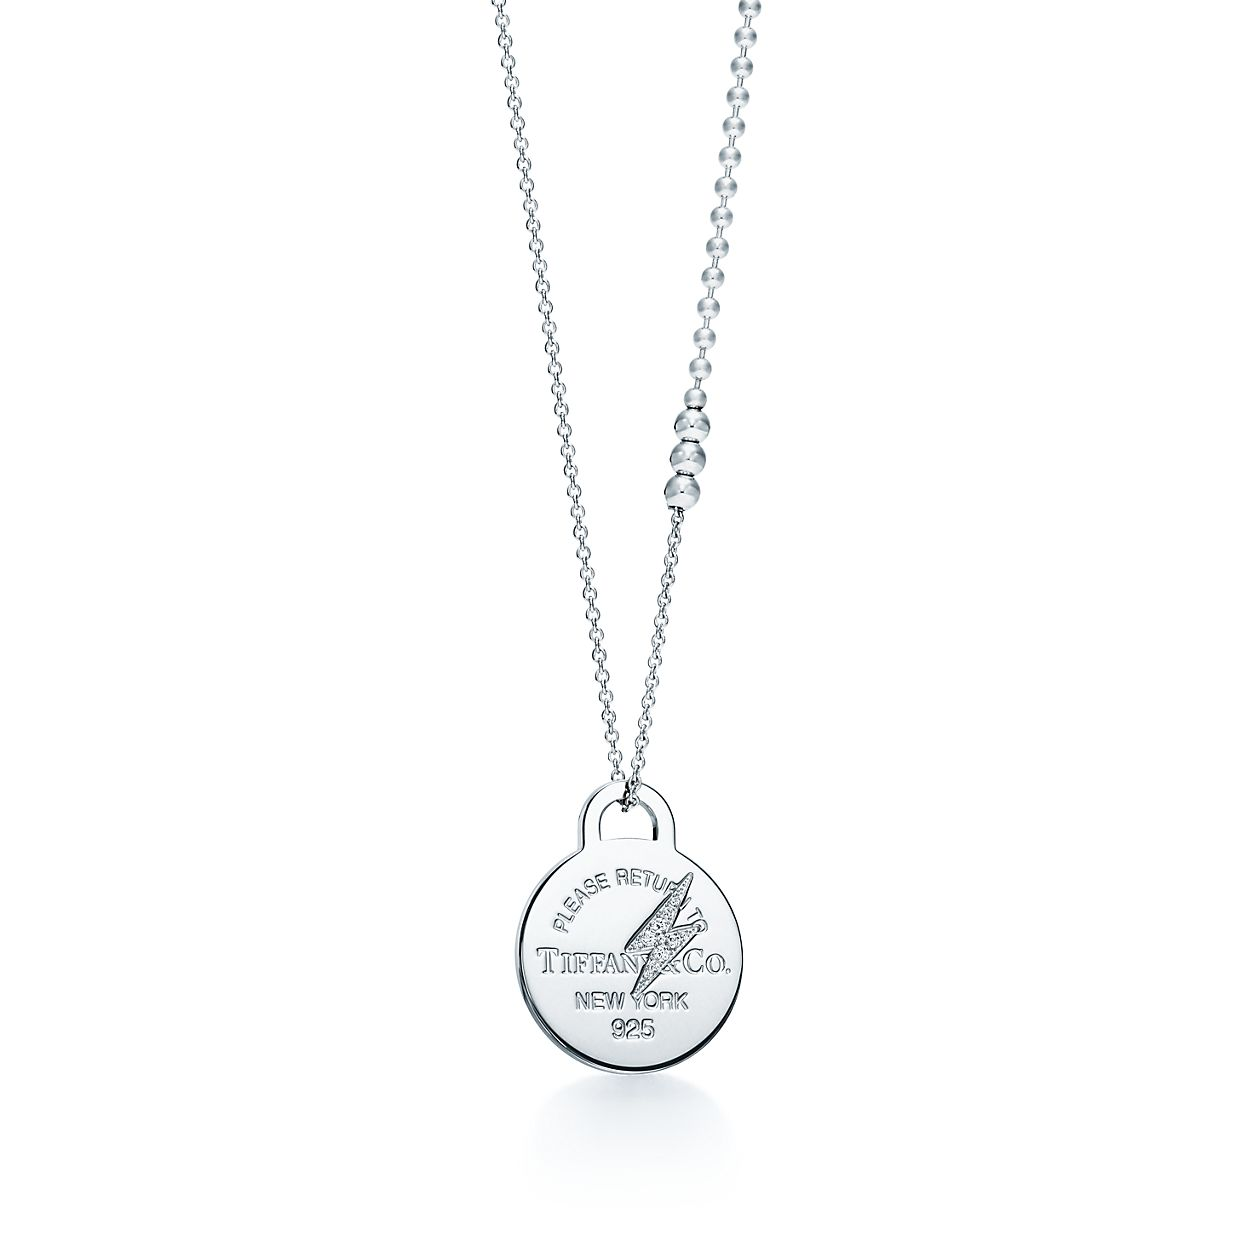 Return to tiffany etched lightning bolt pendant in silver with return to tiffanyetched lightning boltbrpendant mozeypictures Choice Image